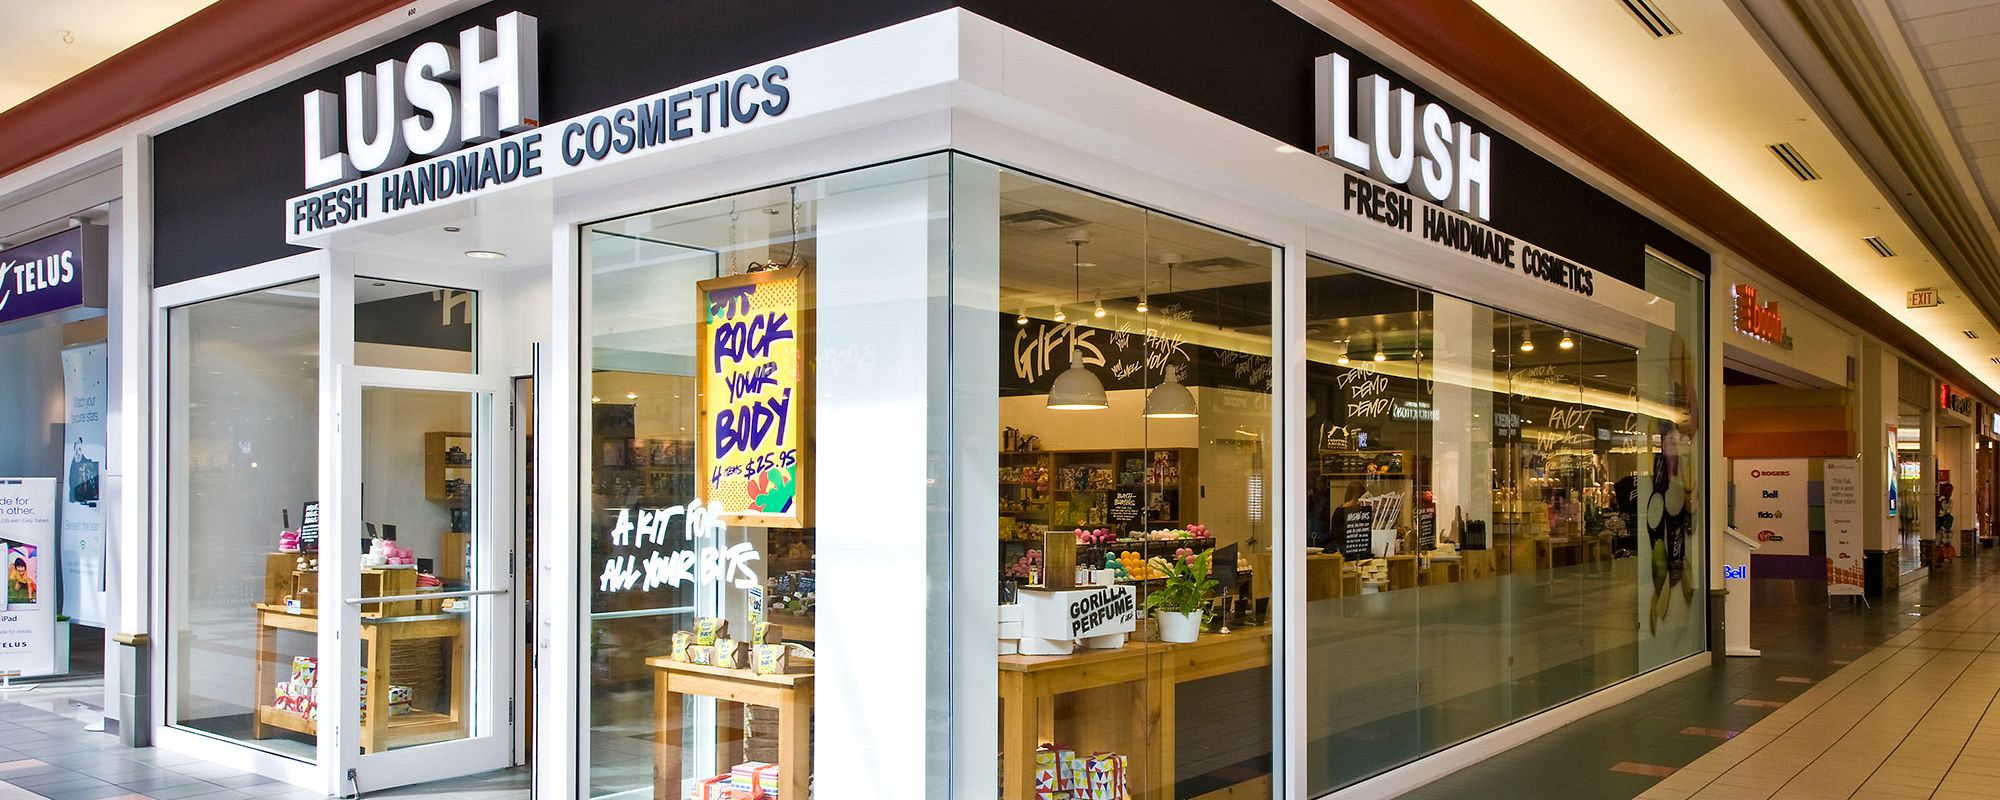 Lush Cosmetics Renovation